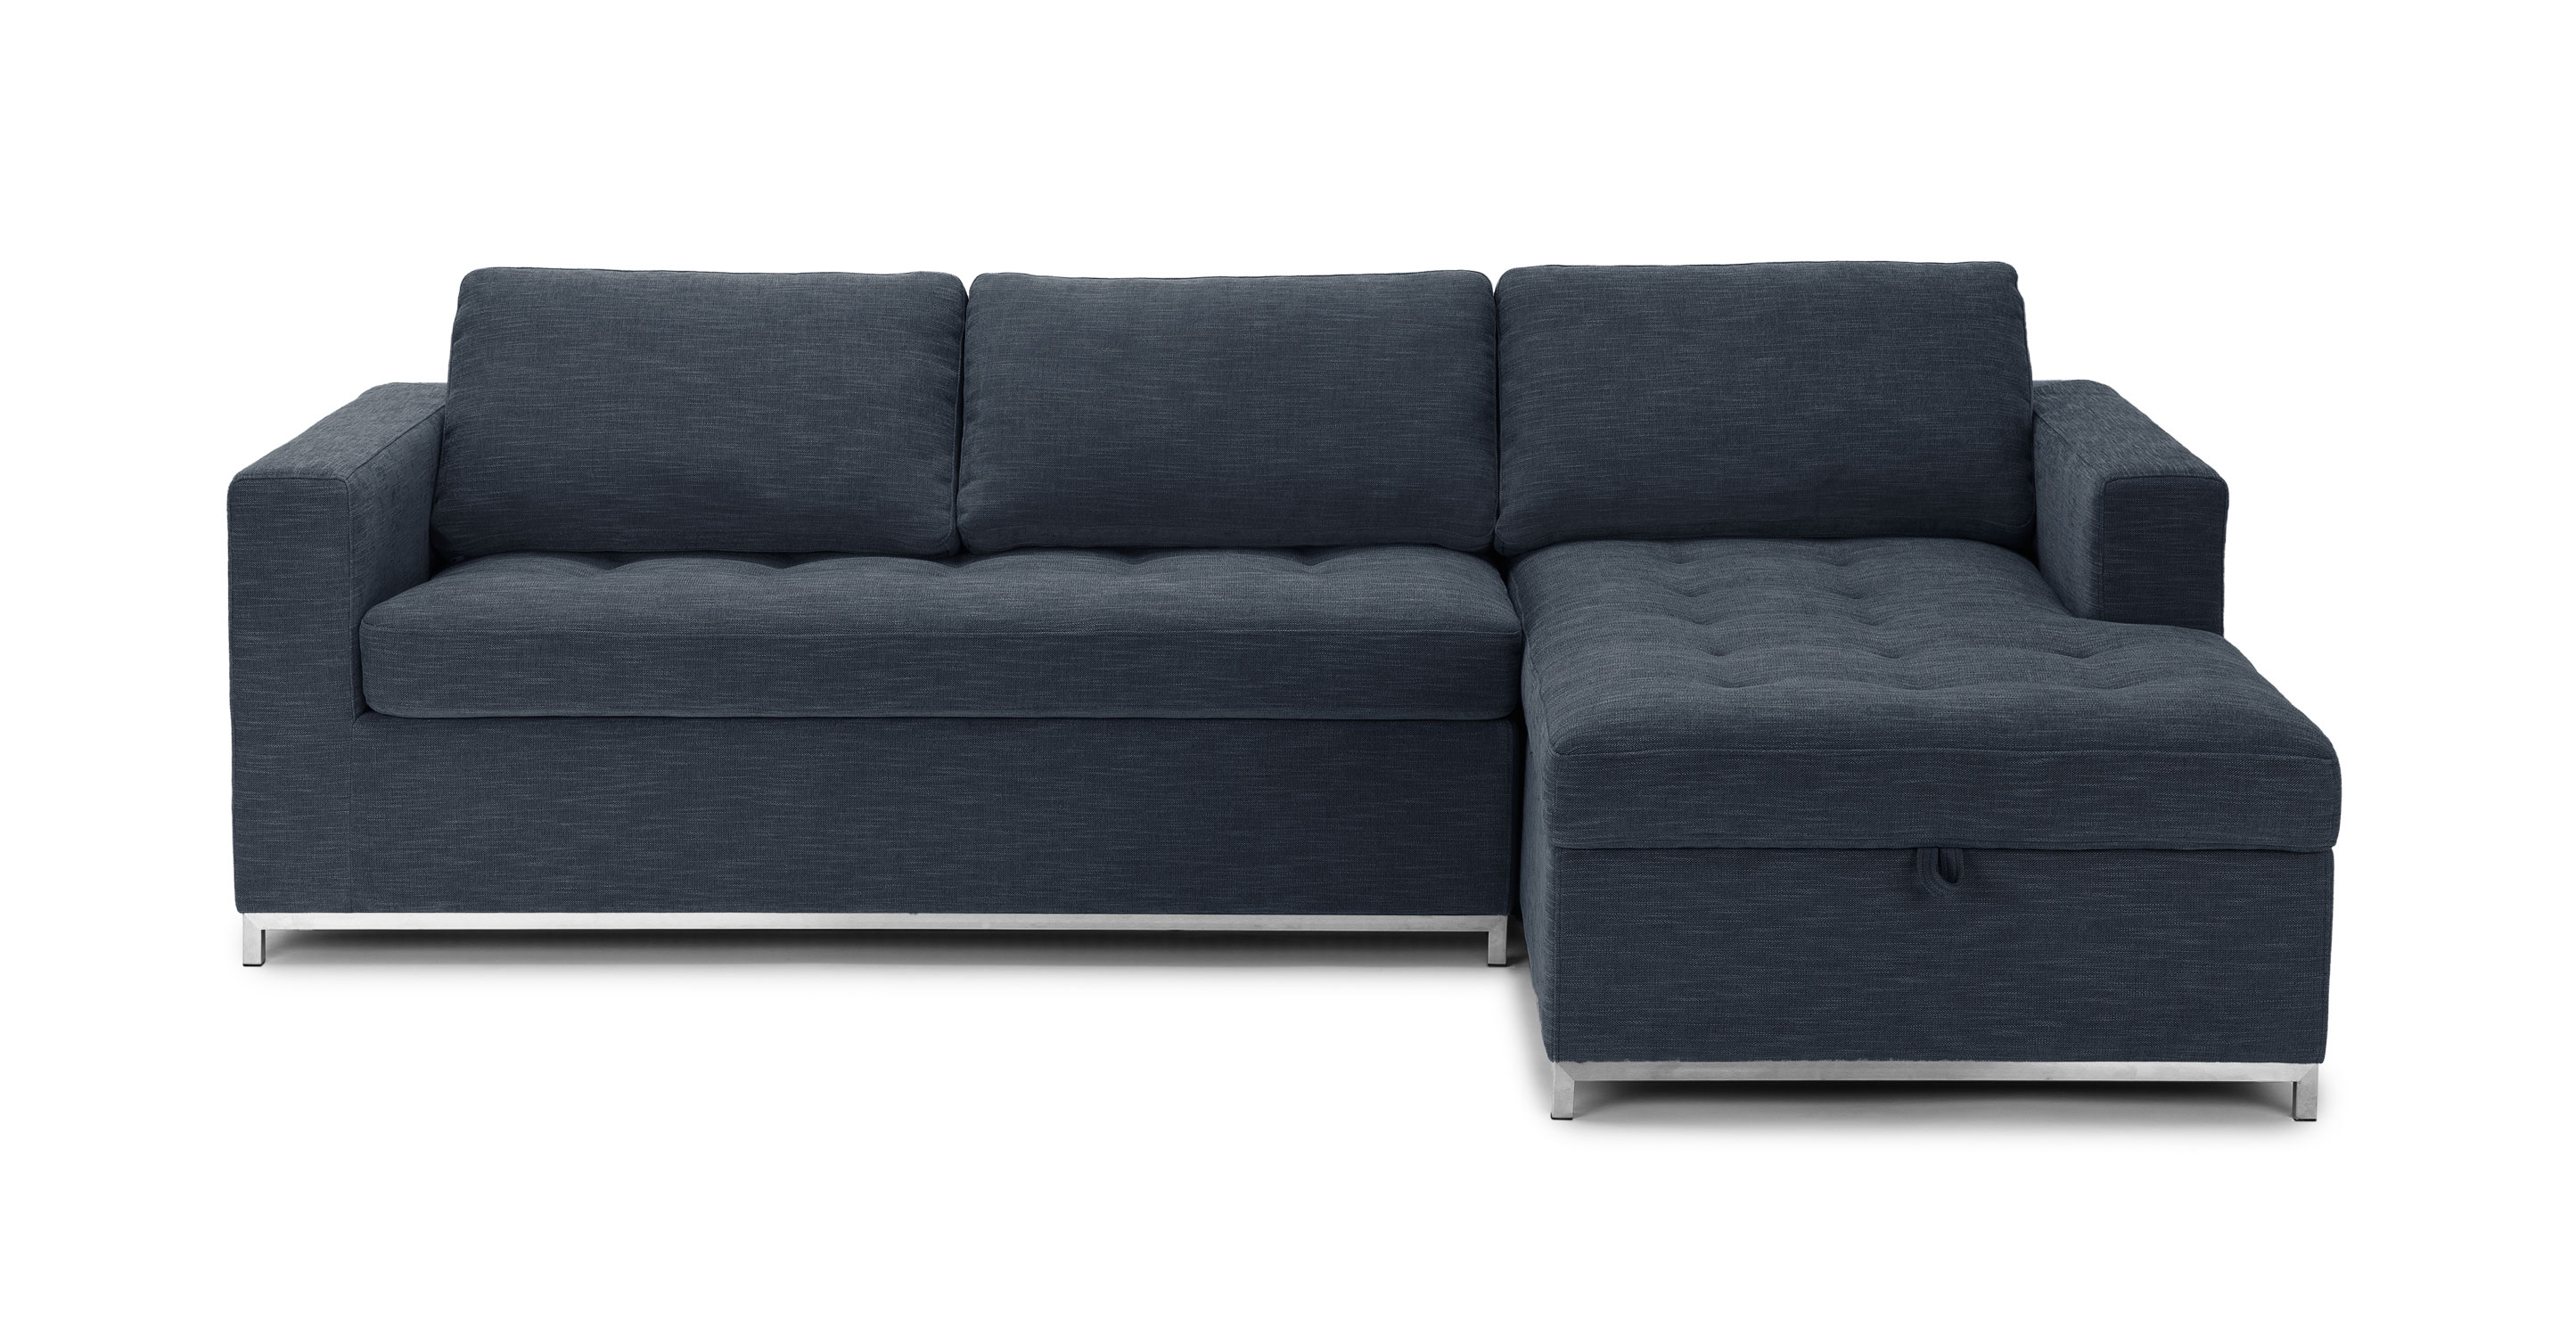 soma dawn gray right sofa bed - sectionals - article | modern, mid-century DJXNDSY